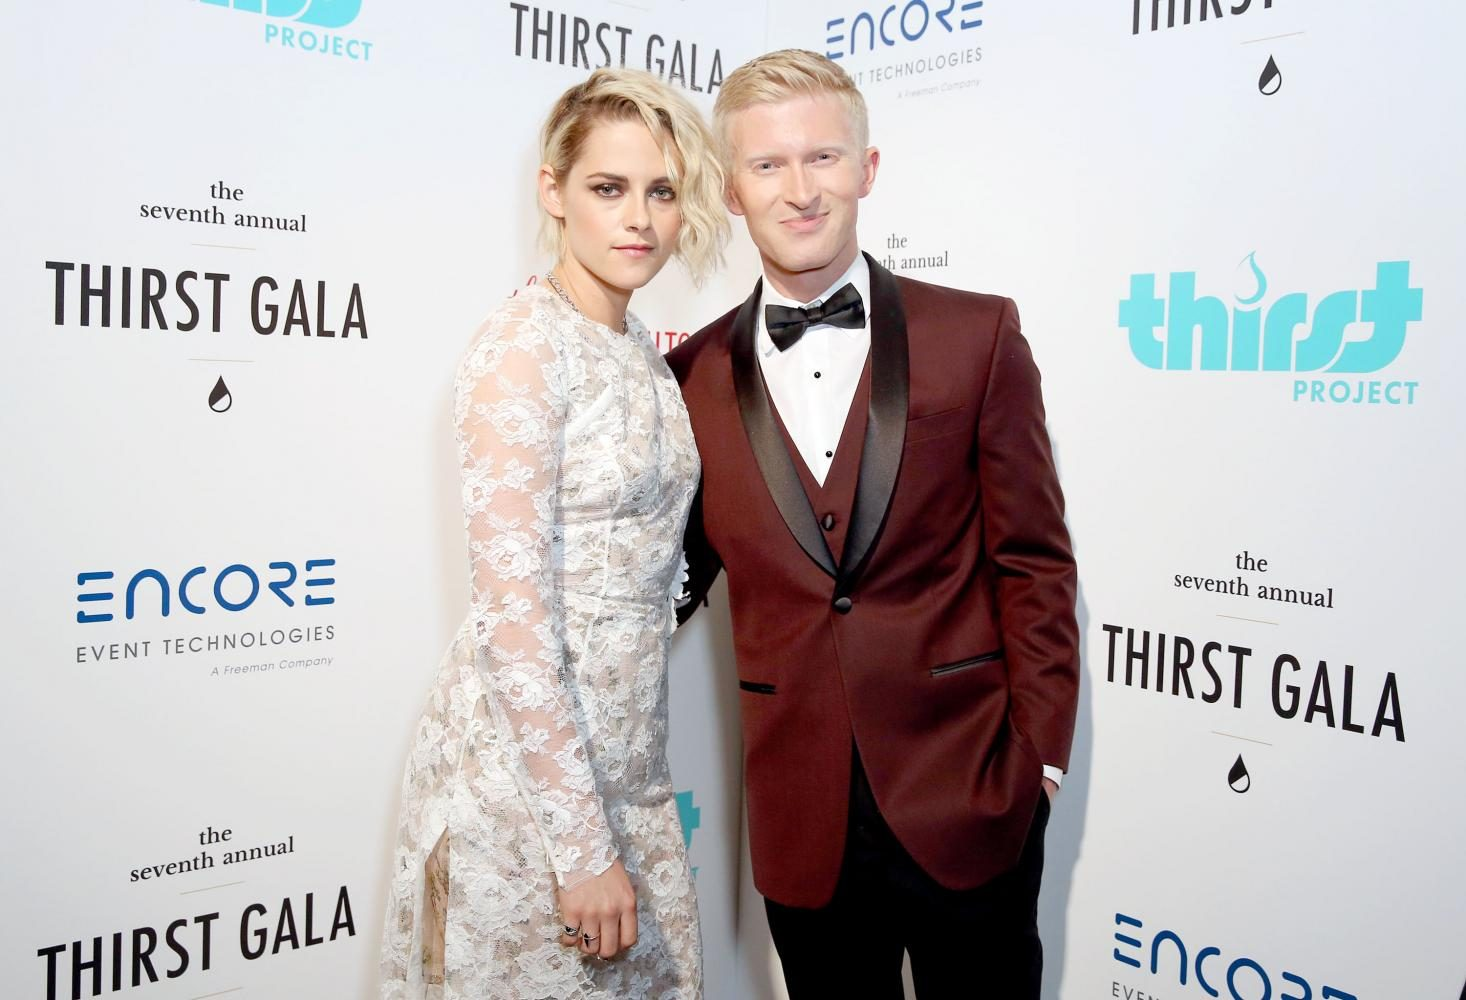 Seth Maxwell, CEO of Thirst Project, pictured with Kristen Stewart of the Twilight movies. Kristen attended the 7th annual Thirst Gala as a presenter for Catherine Hardwick, director of the first Twilight movie.